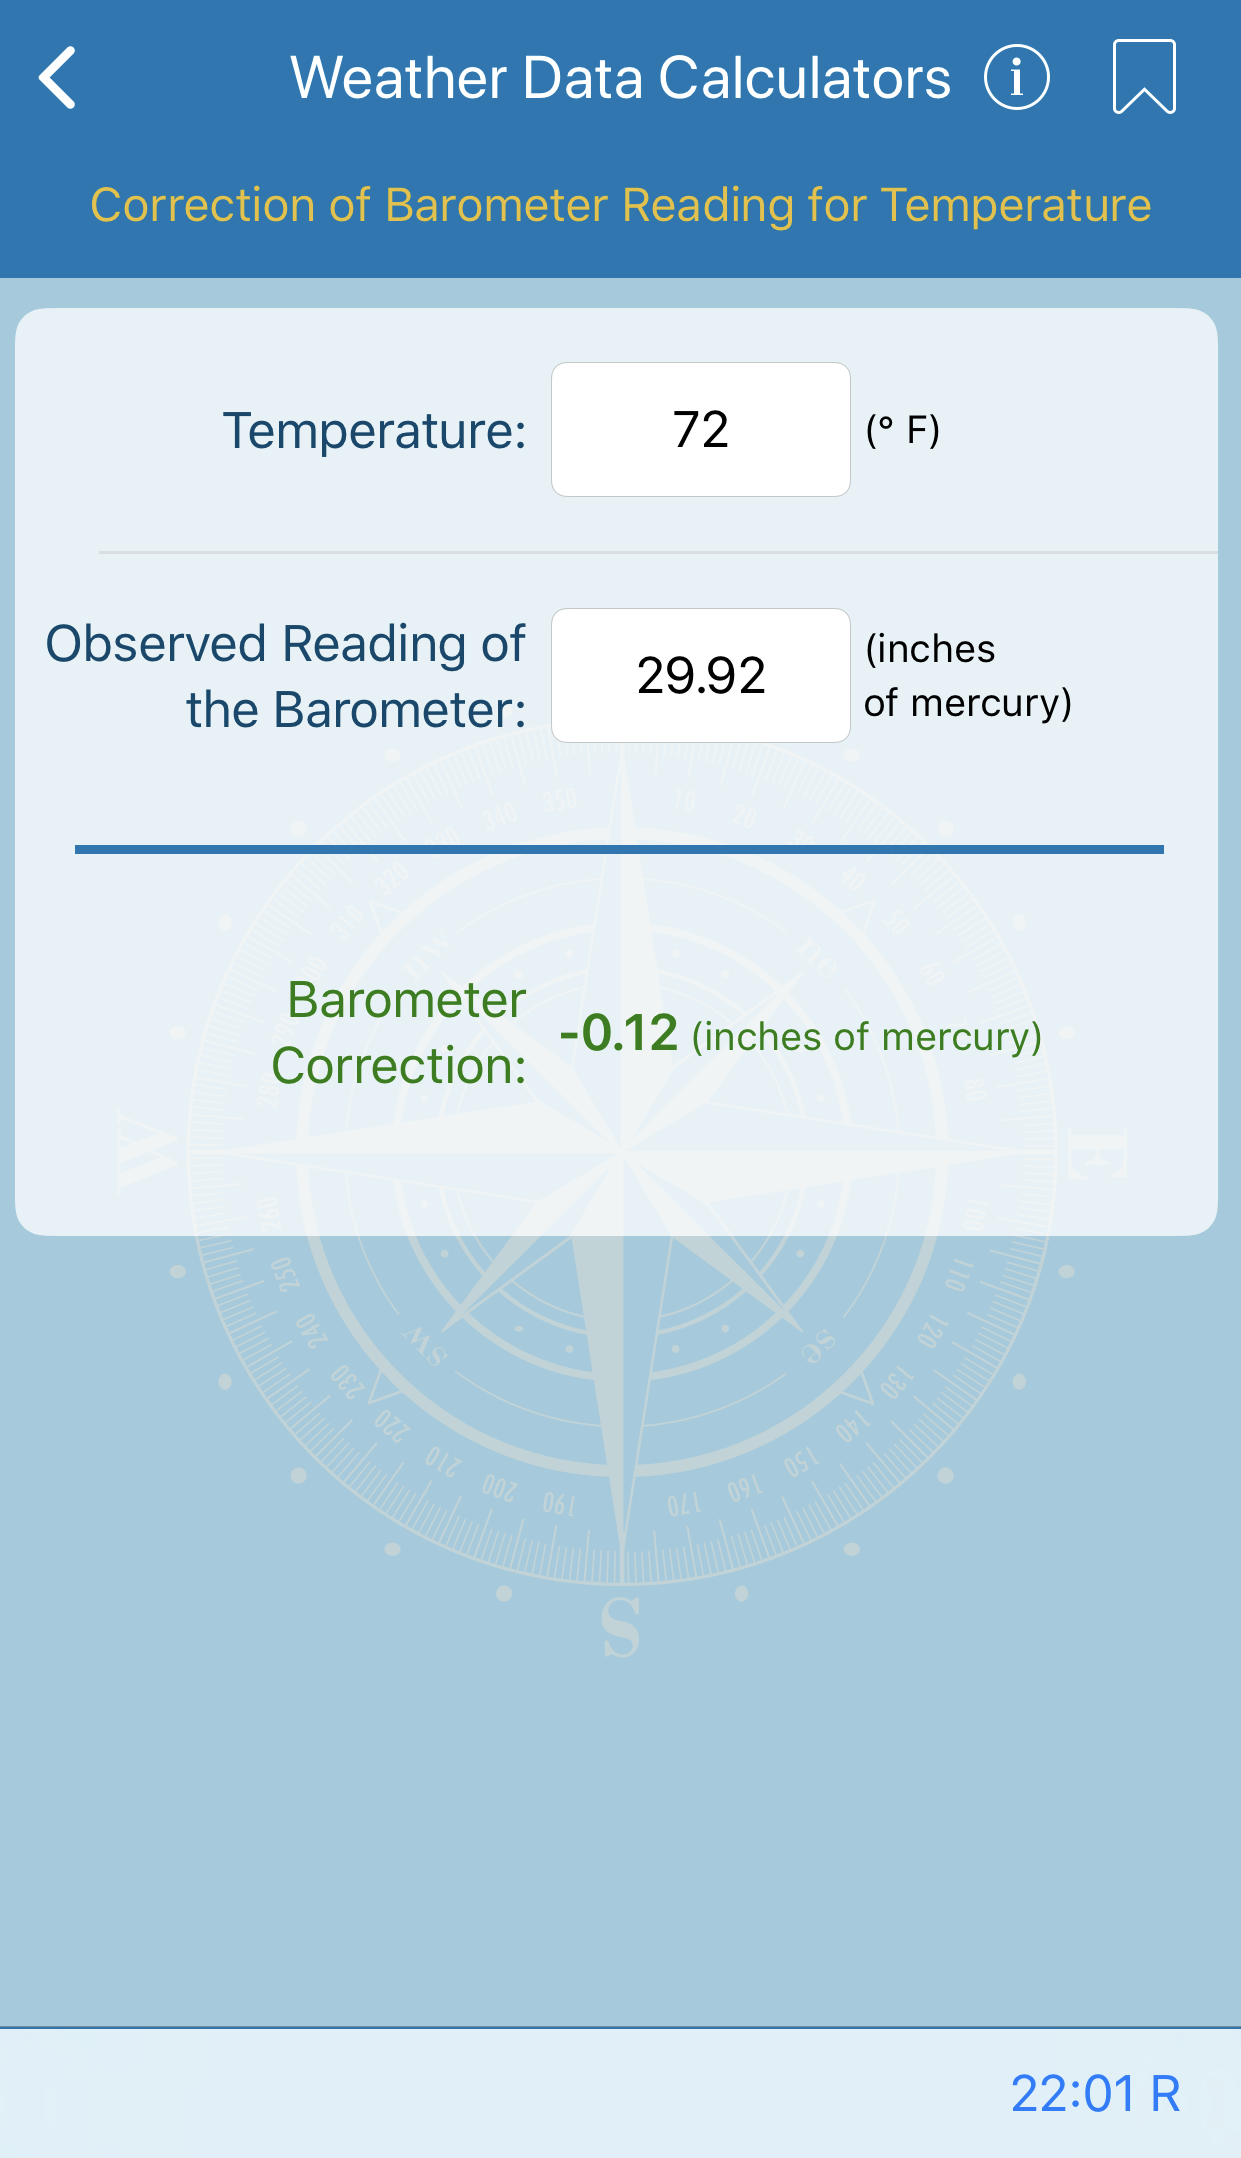 Correction of Barometer Reading for Temperature